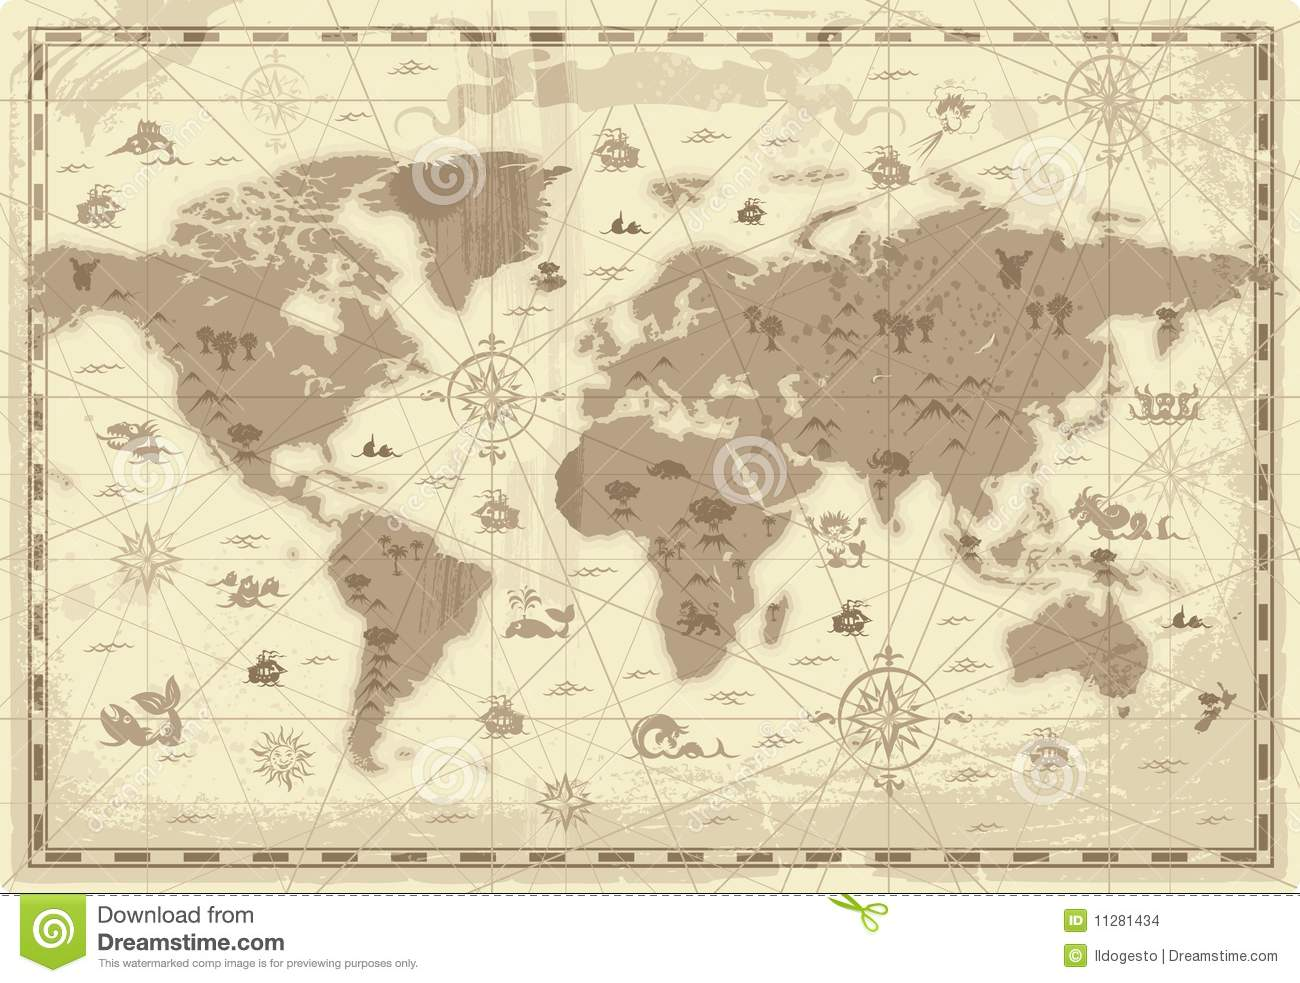 world map sepia with Stockbilder Alte Wel Arte Image11281434 on 5081749939 besides 3310362522 in addition Stockbilder Alte Wel arte Image11281434 besides Stock Photos Antique World Map Image2801773 in addition Papier Peint Ancienne Map Monde 3528.